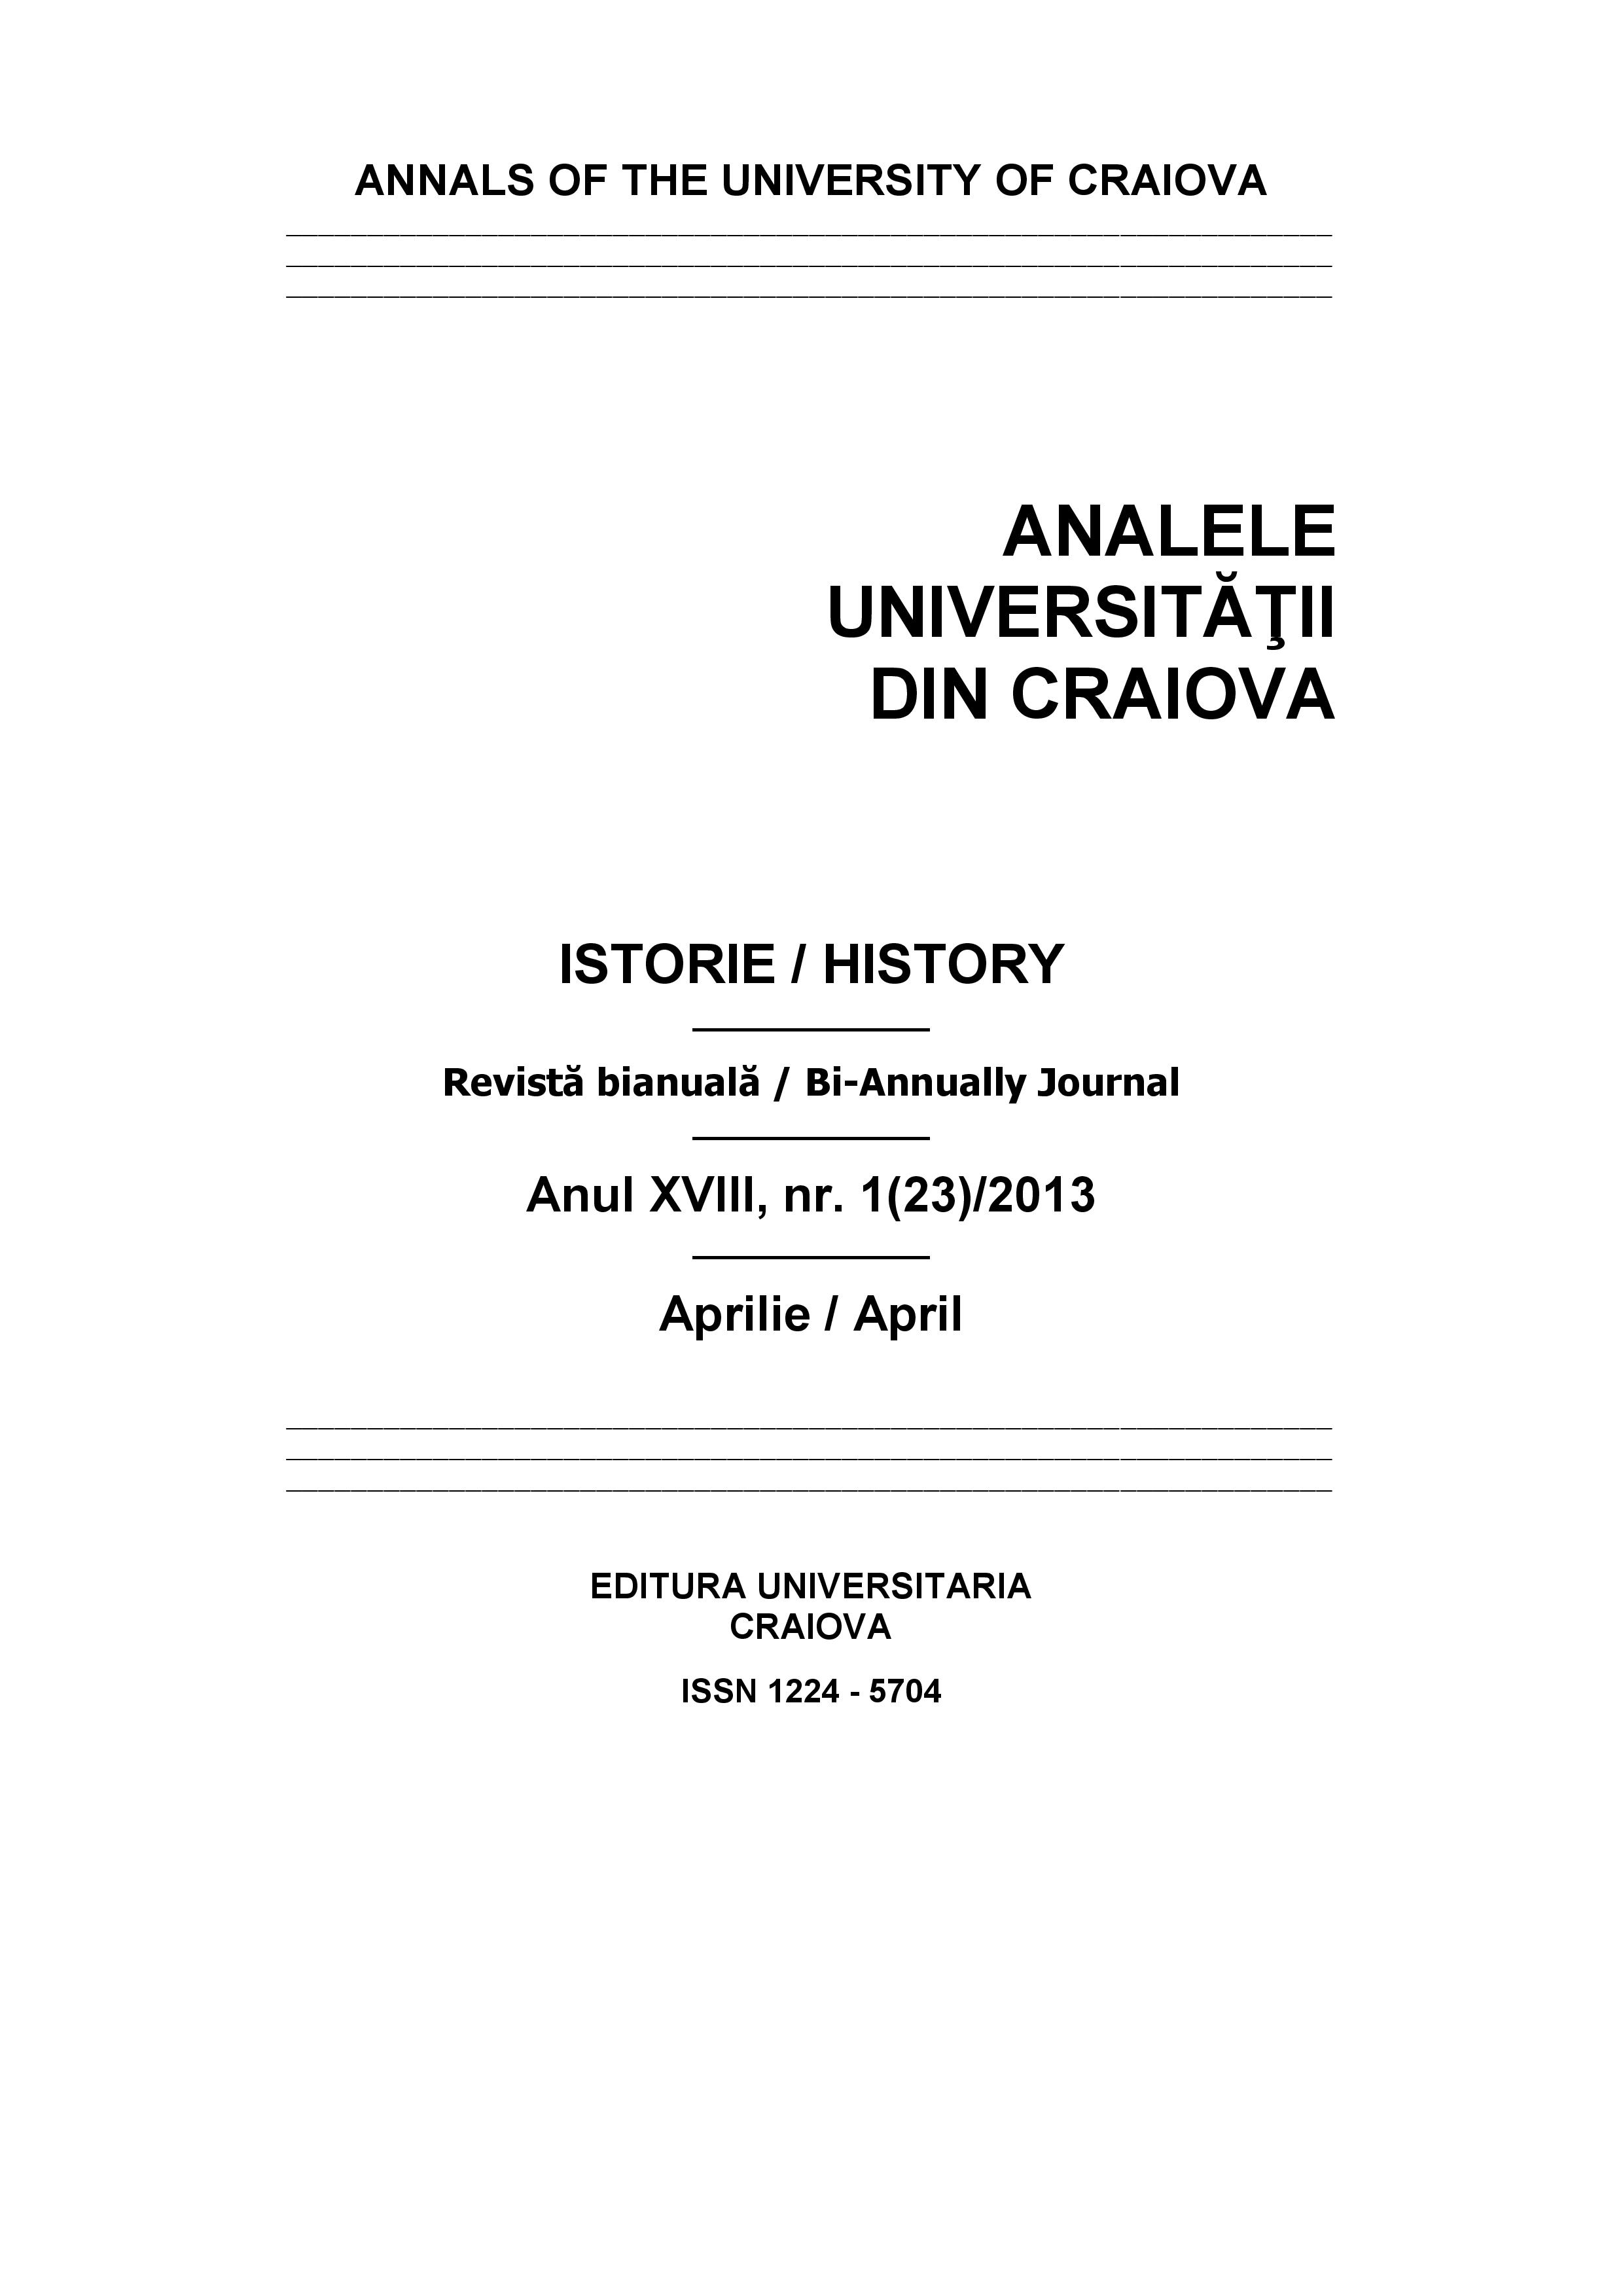 ANALE ISTORIE 2013_1_COPERTA PDF-page-001